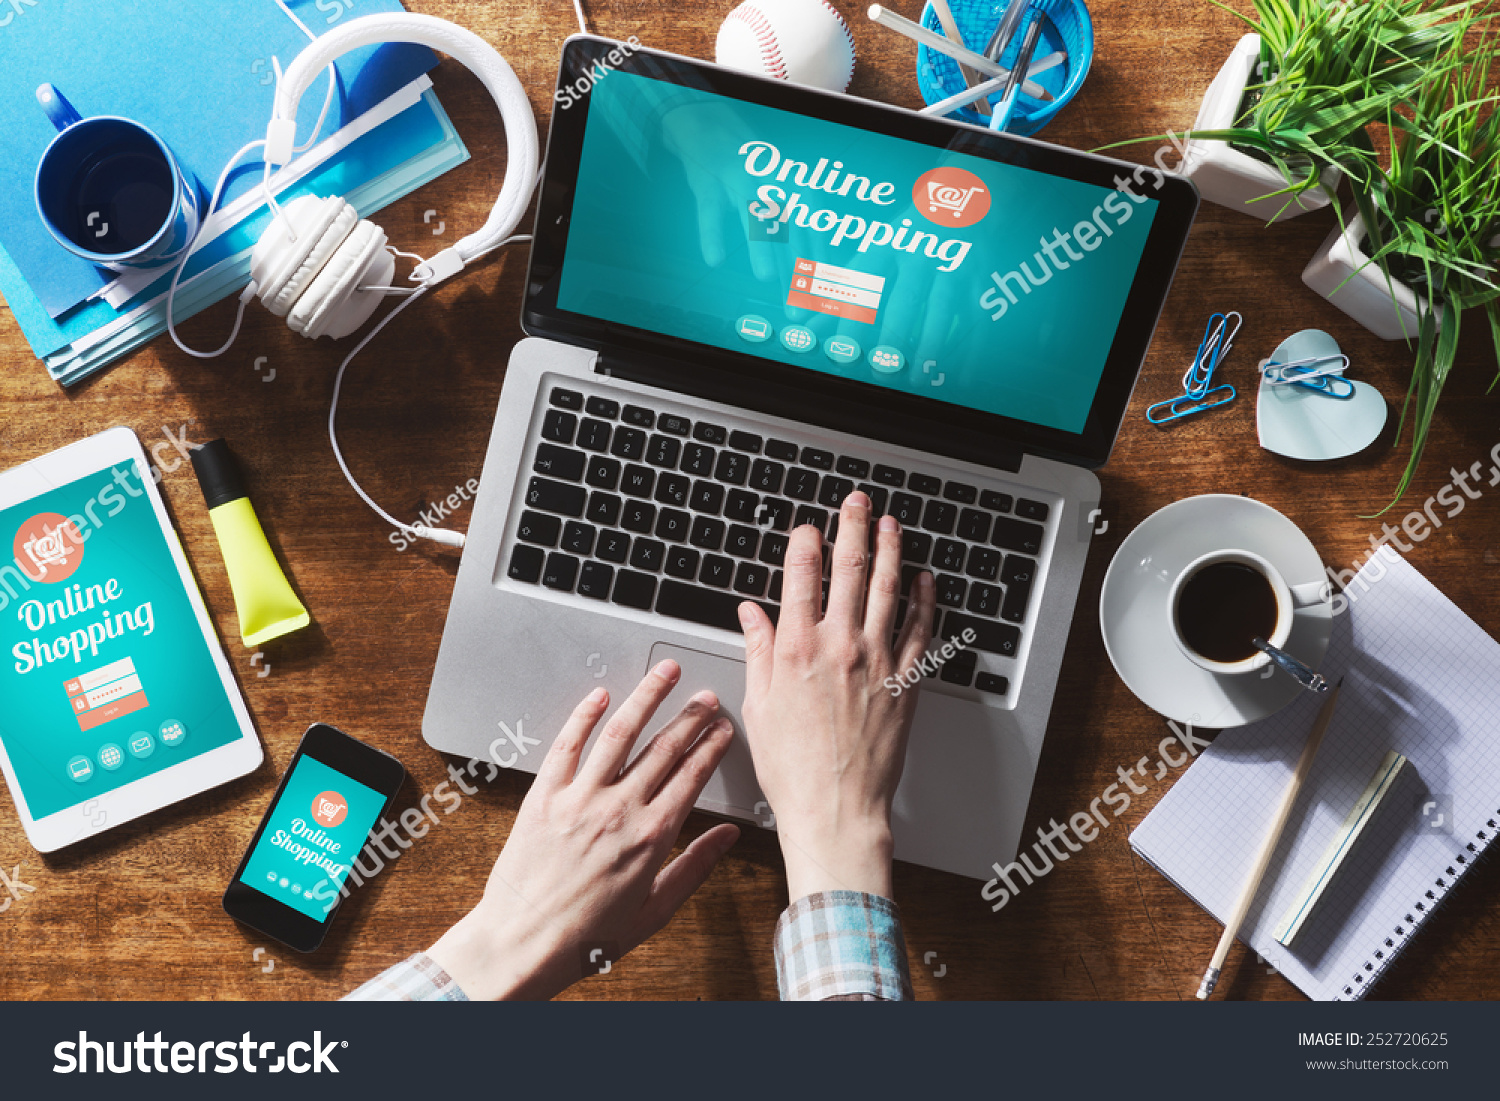 Online shopping website on laptop screen with female hands typing #252720625